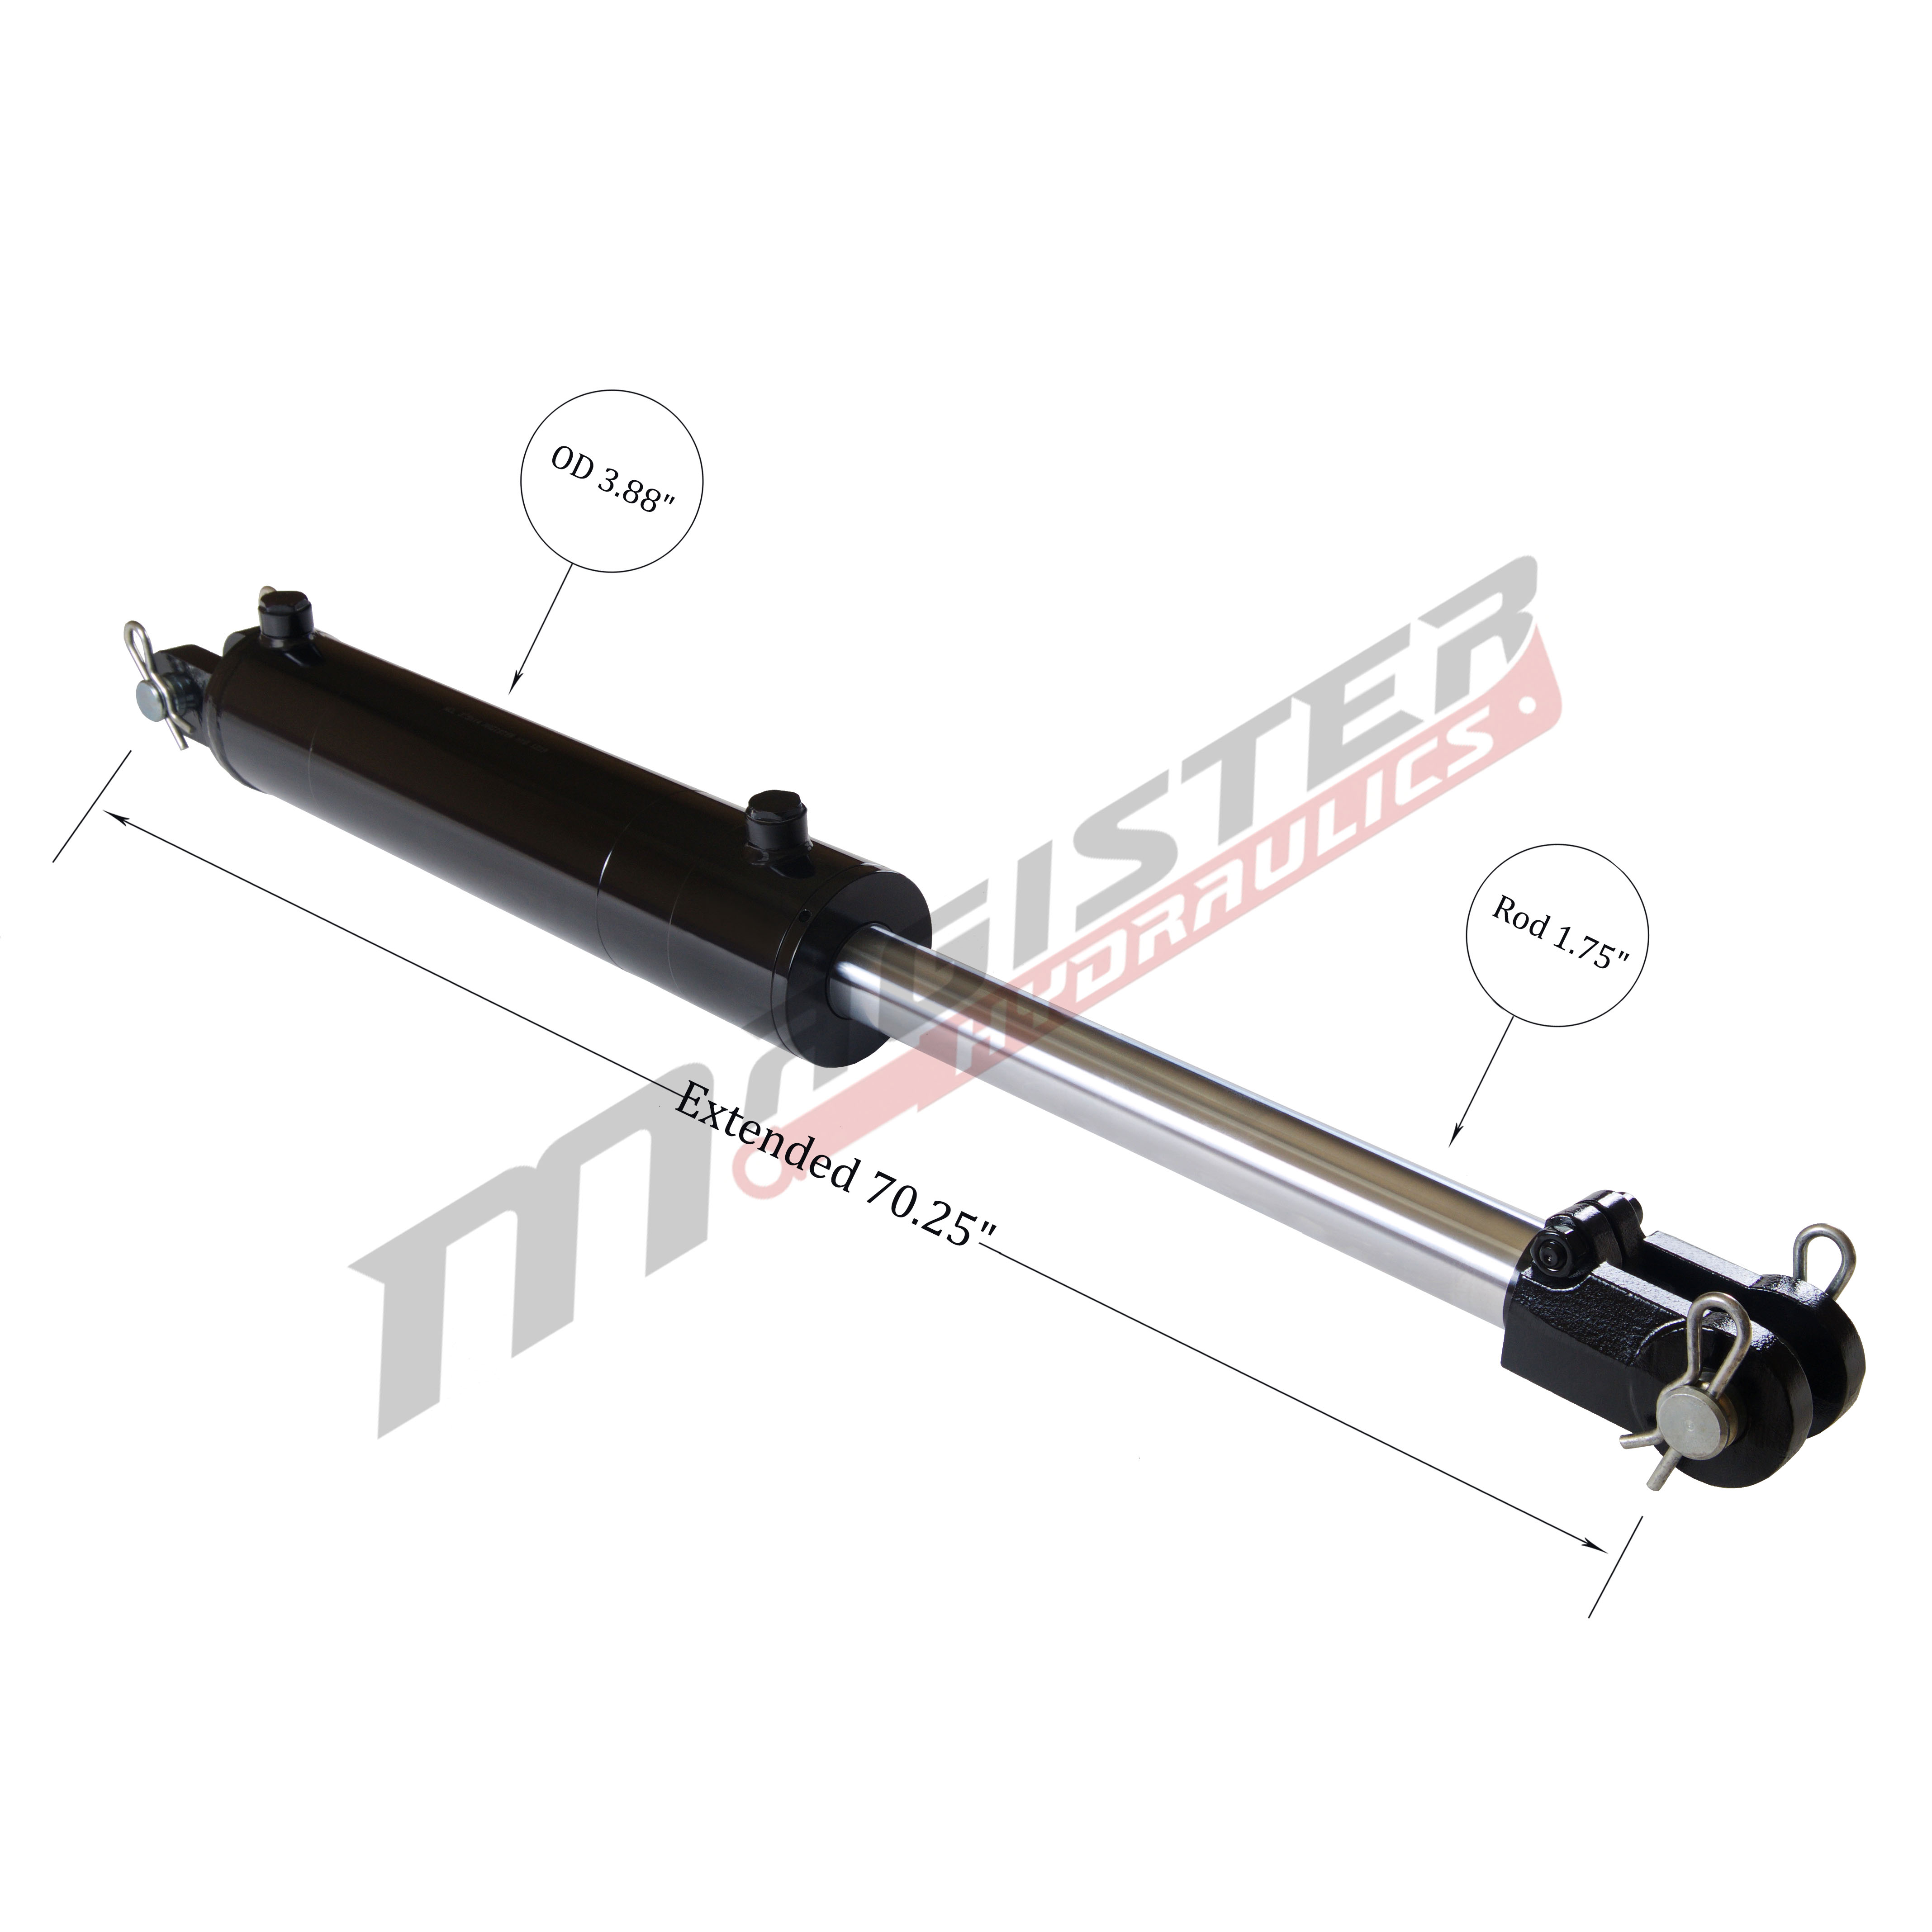 3.5 bore x 30 stroke hydraulic cylinder, welded clevis double acting cylinder | Magister Hydraulics